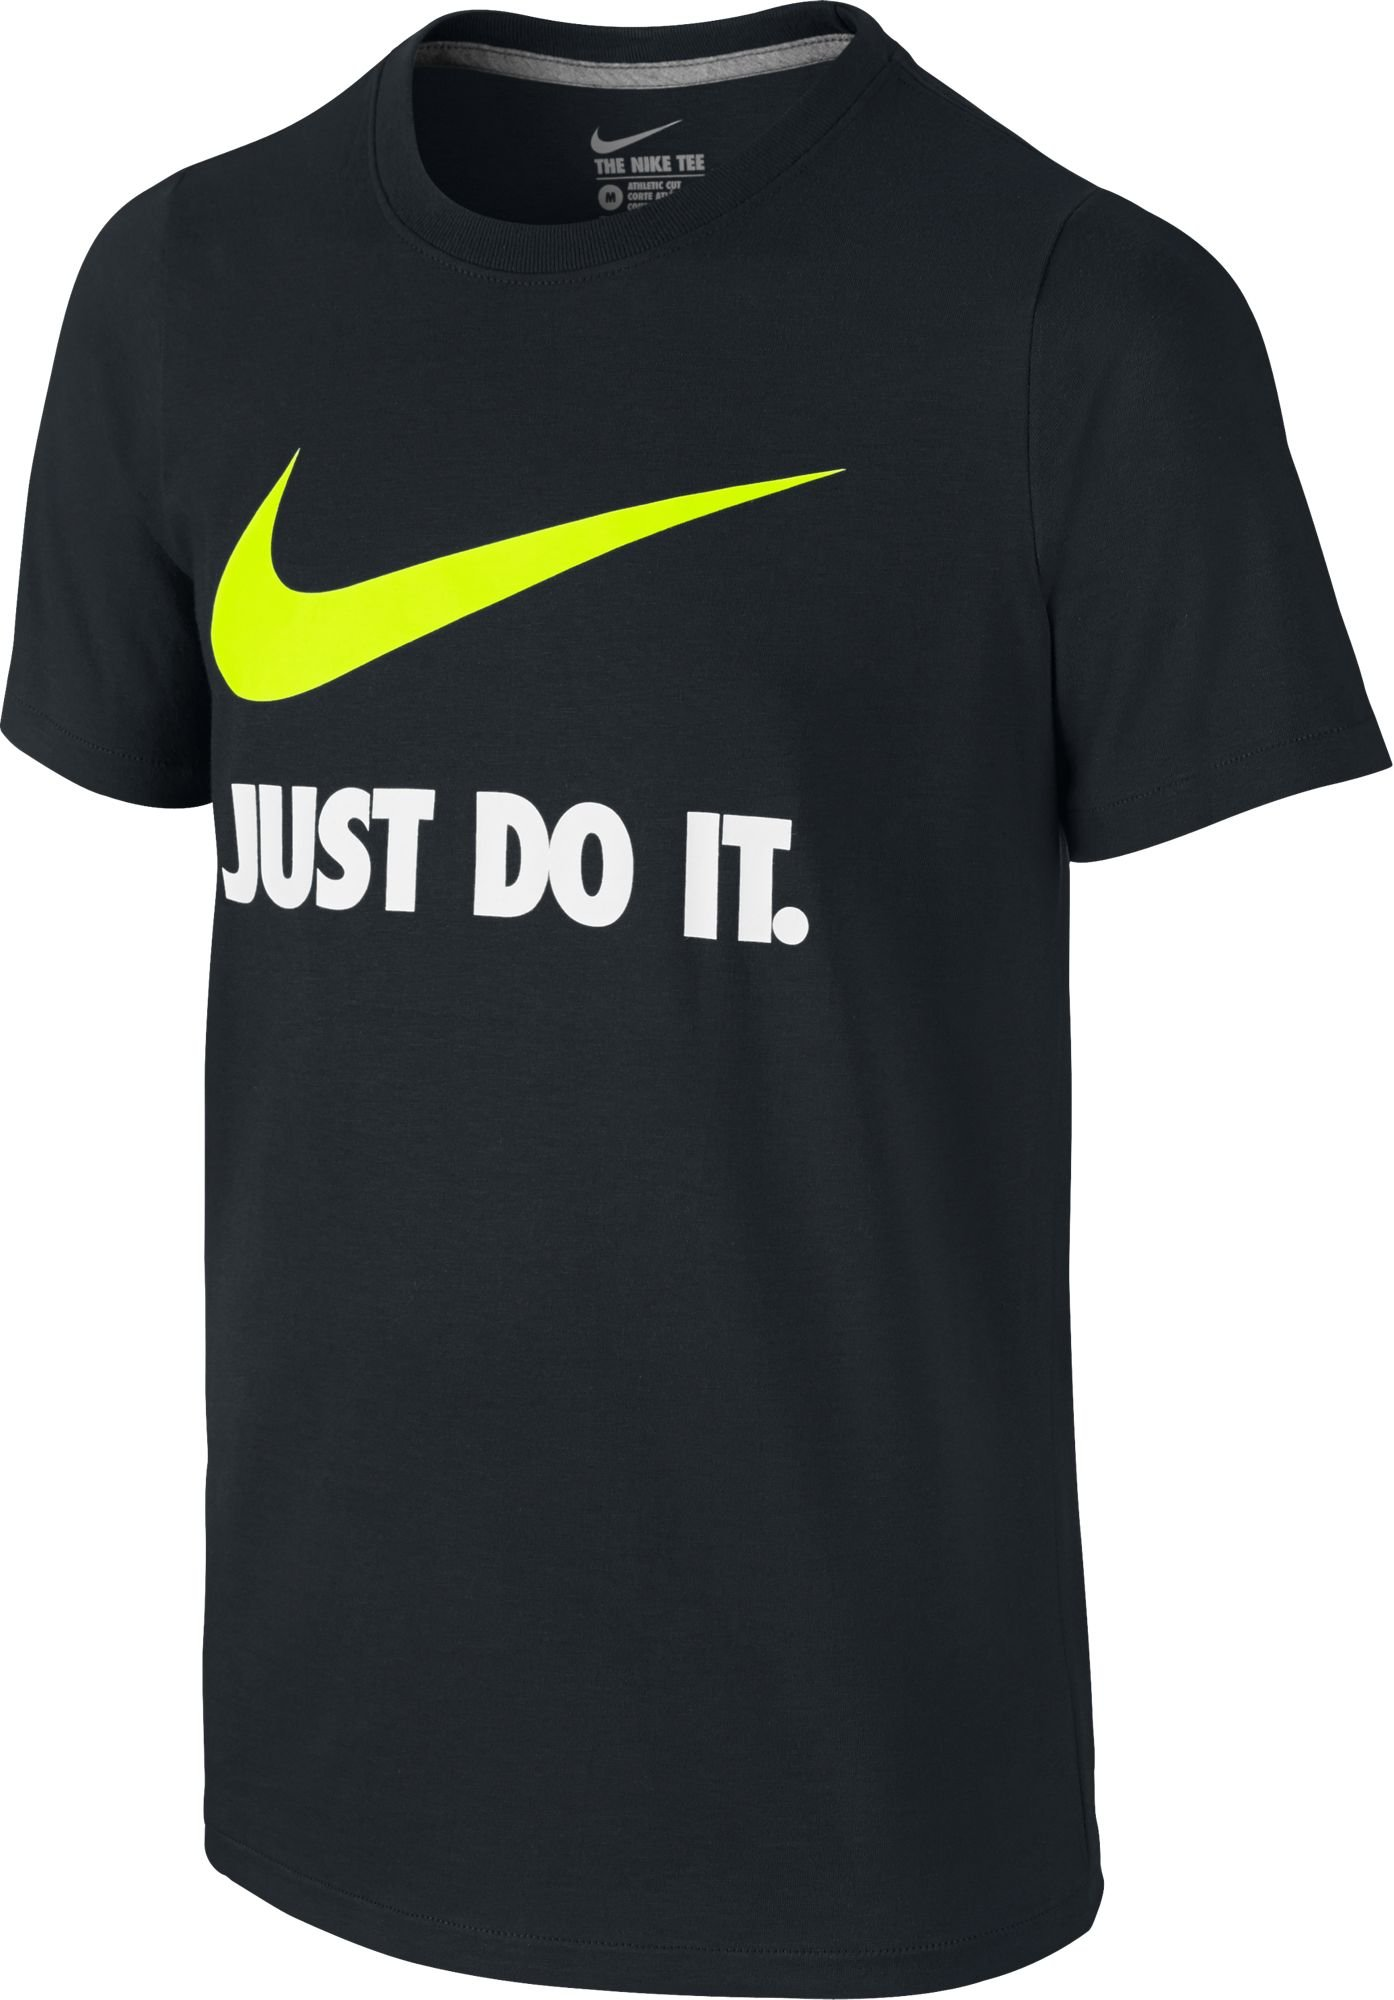 NIKE Boys' Just Do It Swoosh Tee, Black/Volt, Large